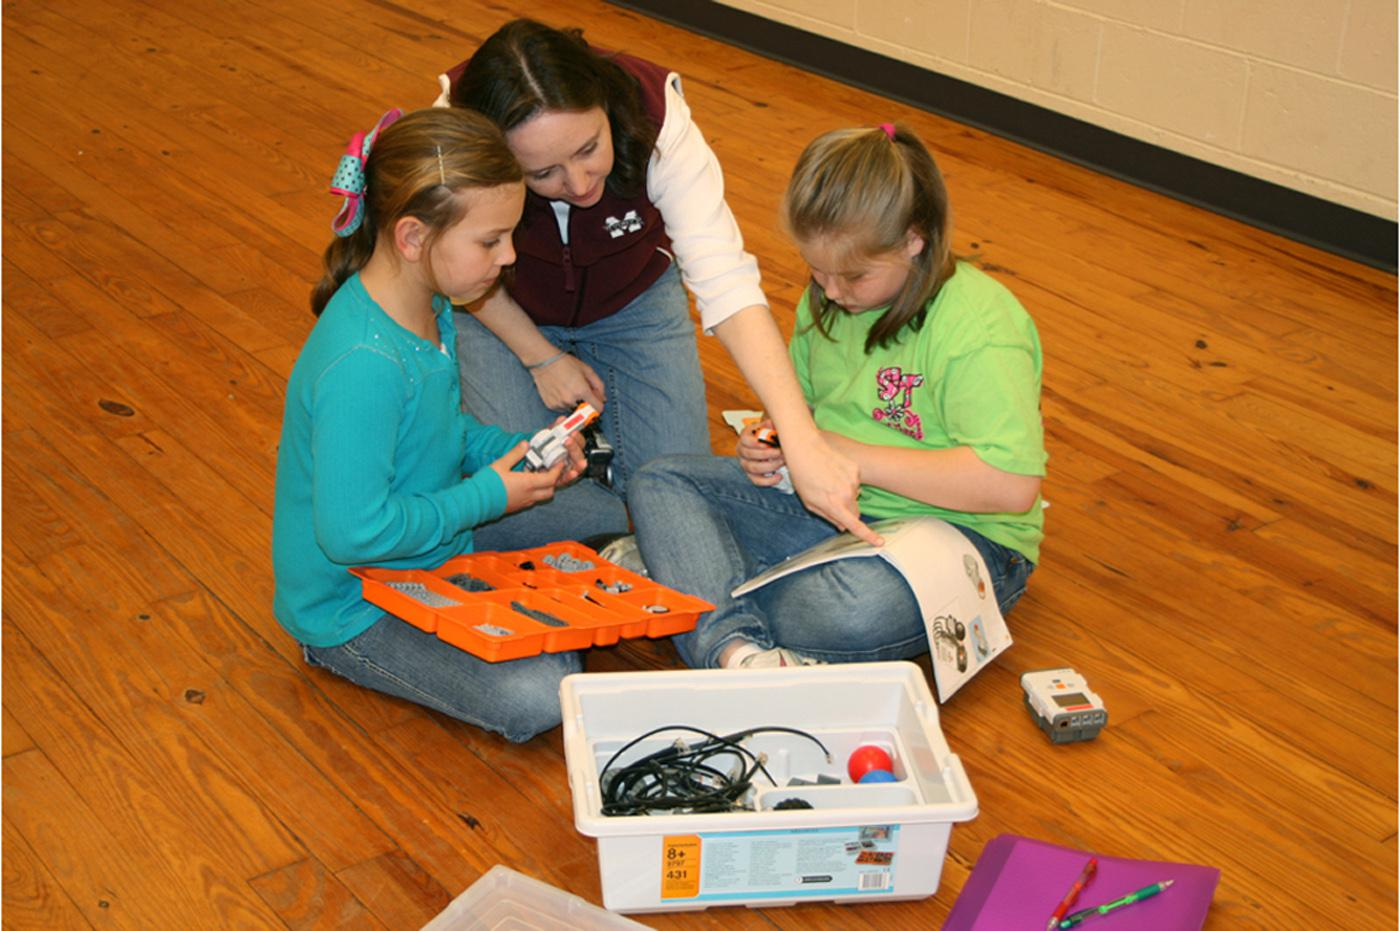 Kaitlyn Plance, left, and Jordan Jackson, right, work to build a robot with Amy Walsh, Amite County 4-H Agent. The youth are learning science, technology and engineering through the 4-H robotics program. (Photo by Mariah Smith)